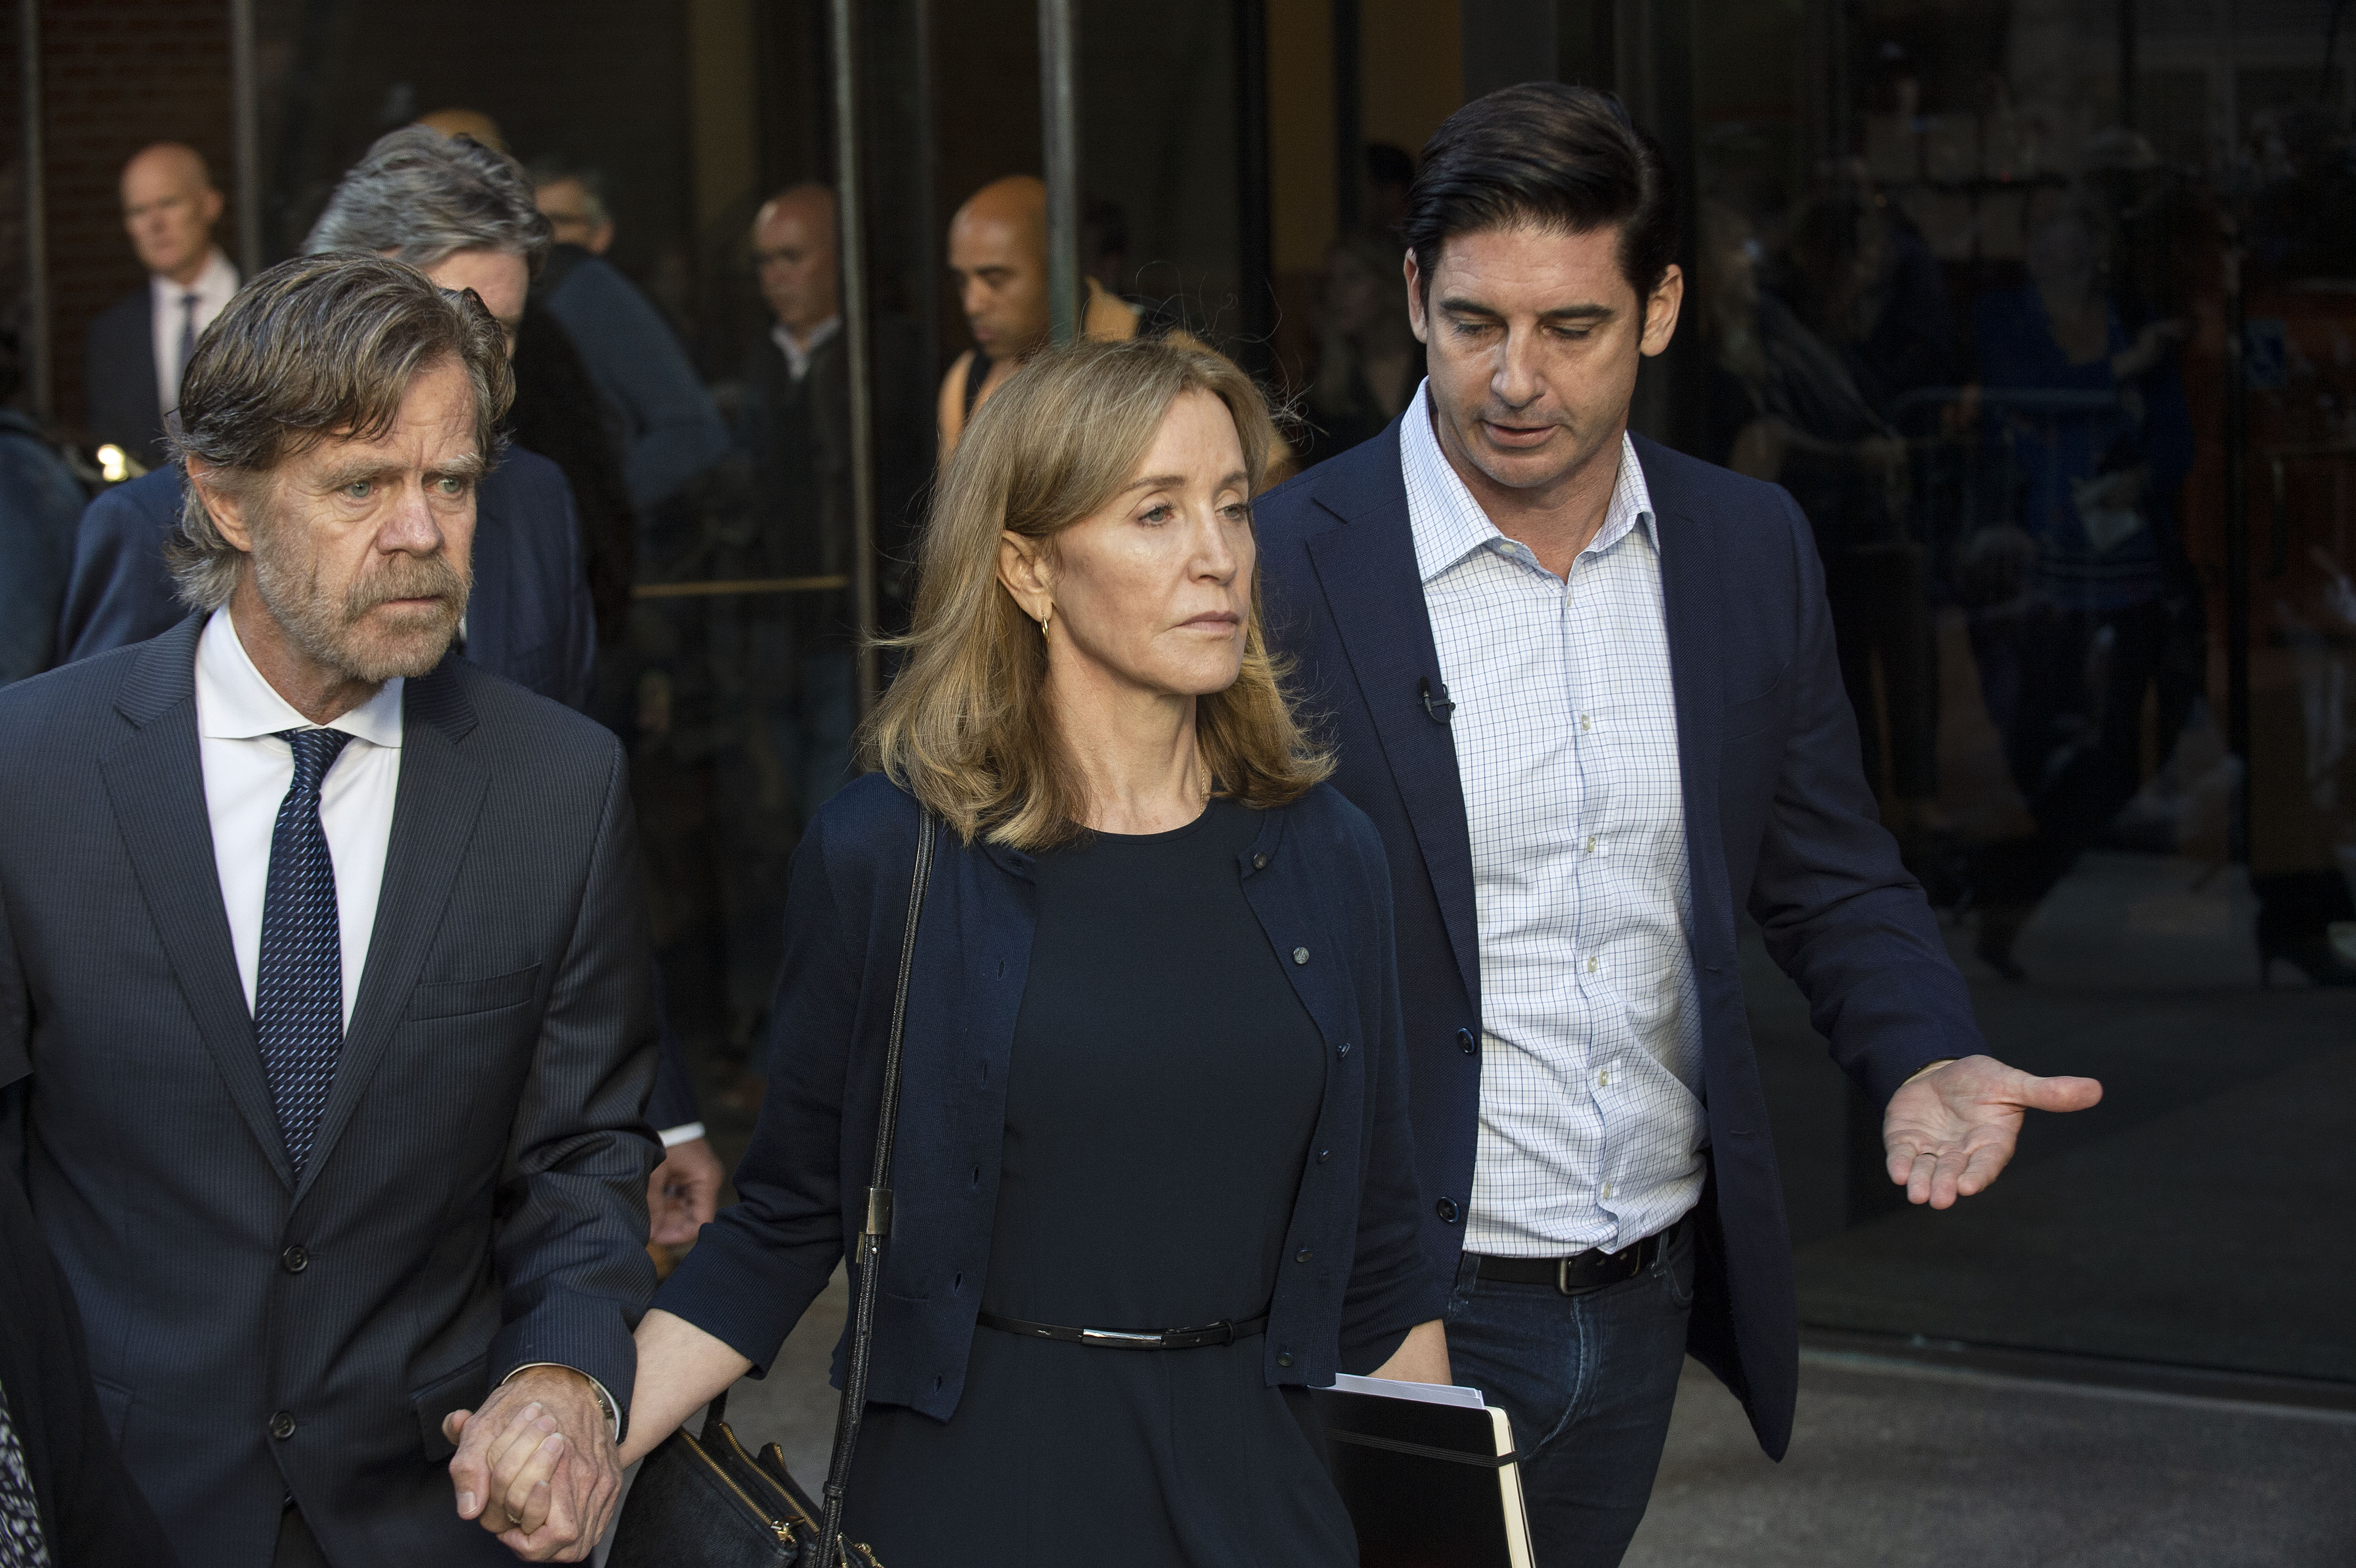 Actress Felicity Huffman, escorted by her husband William H. Macy, exits court in Boston on Sept. 13, 2019.